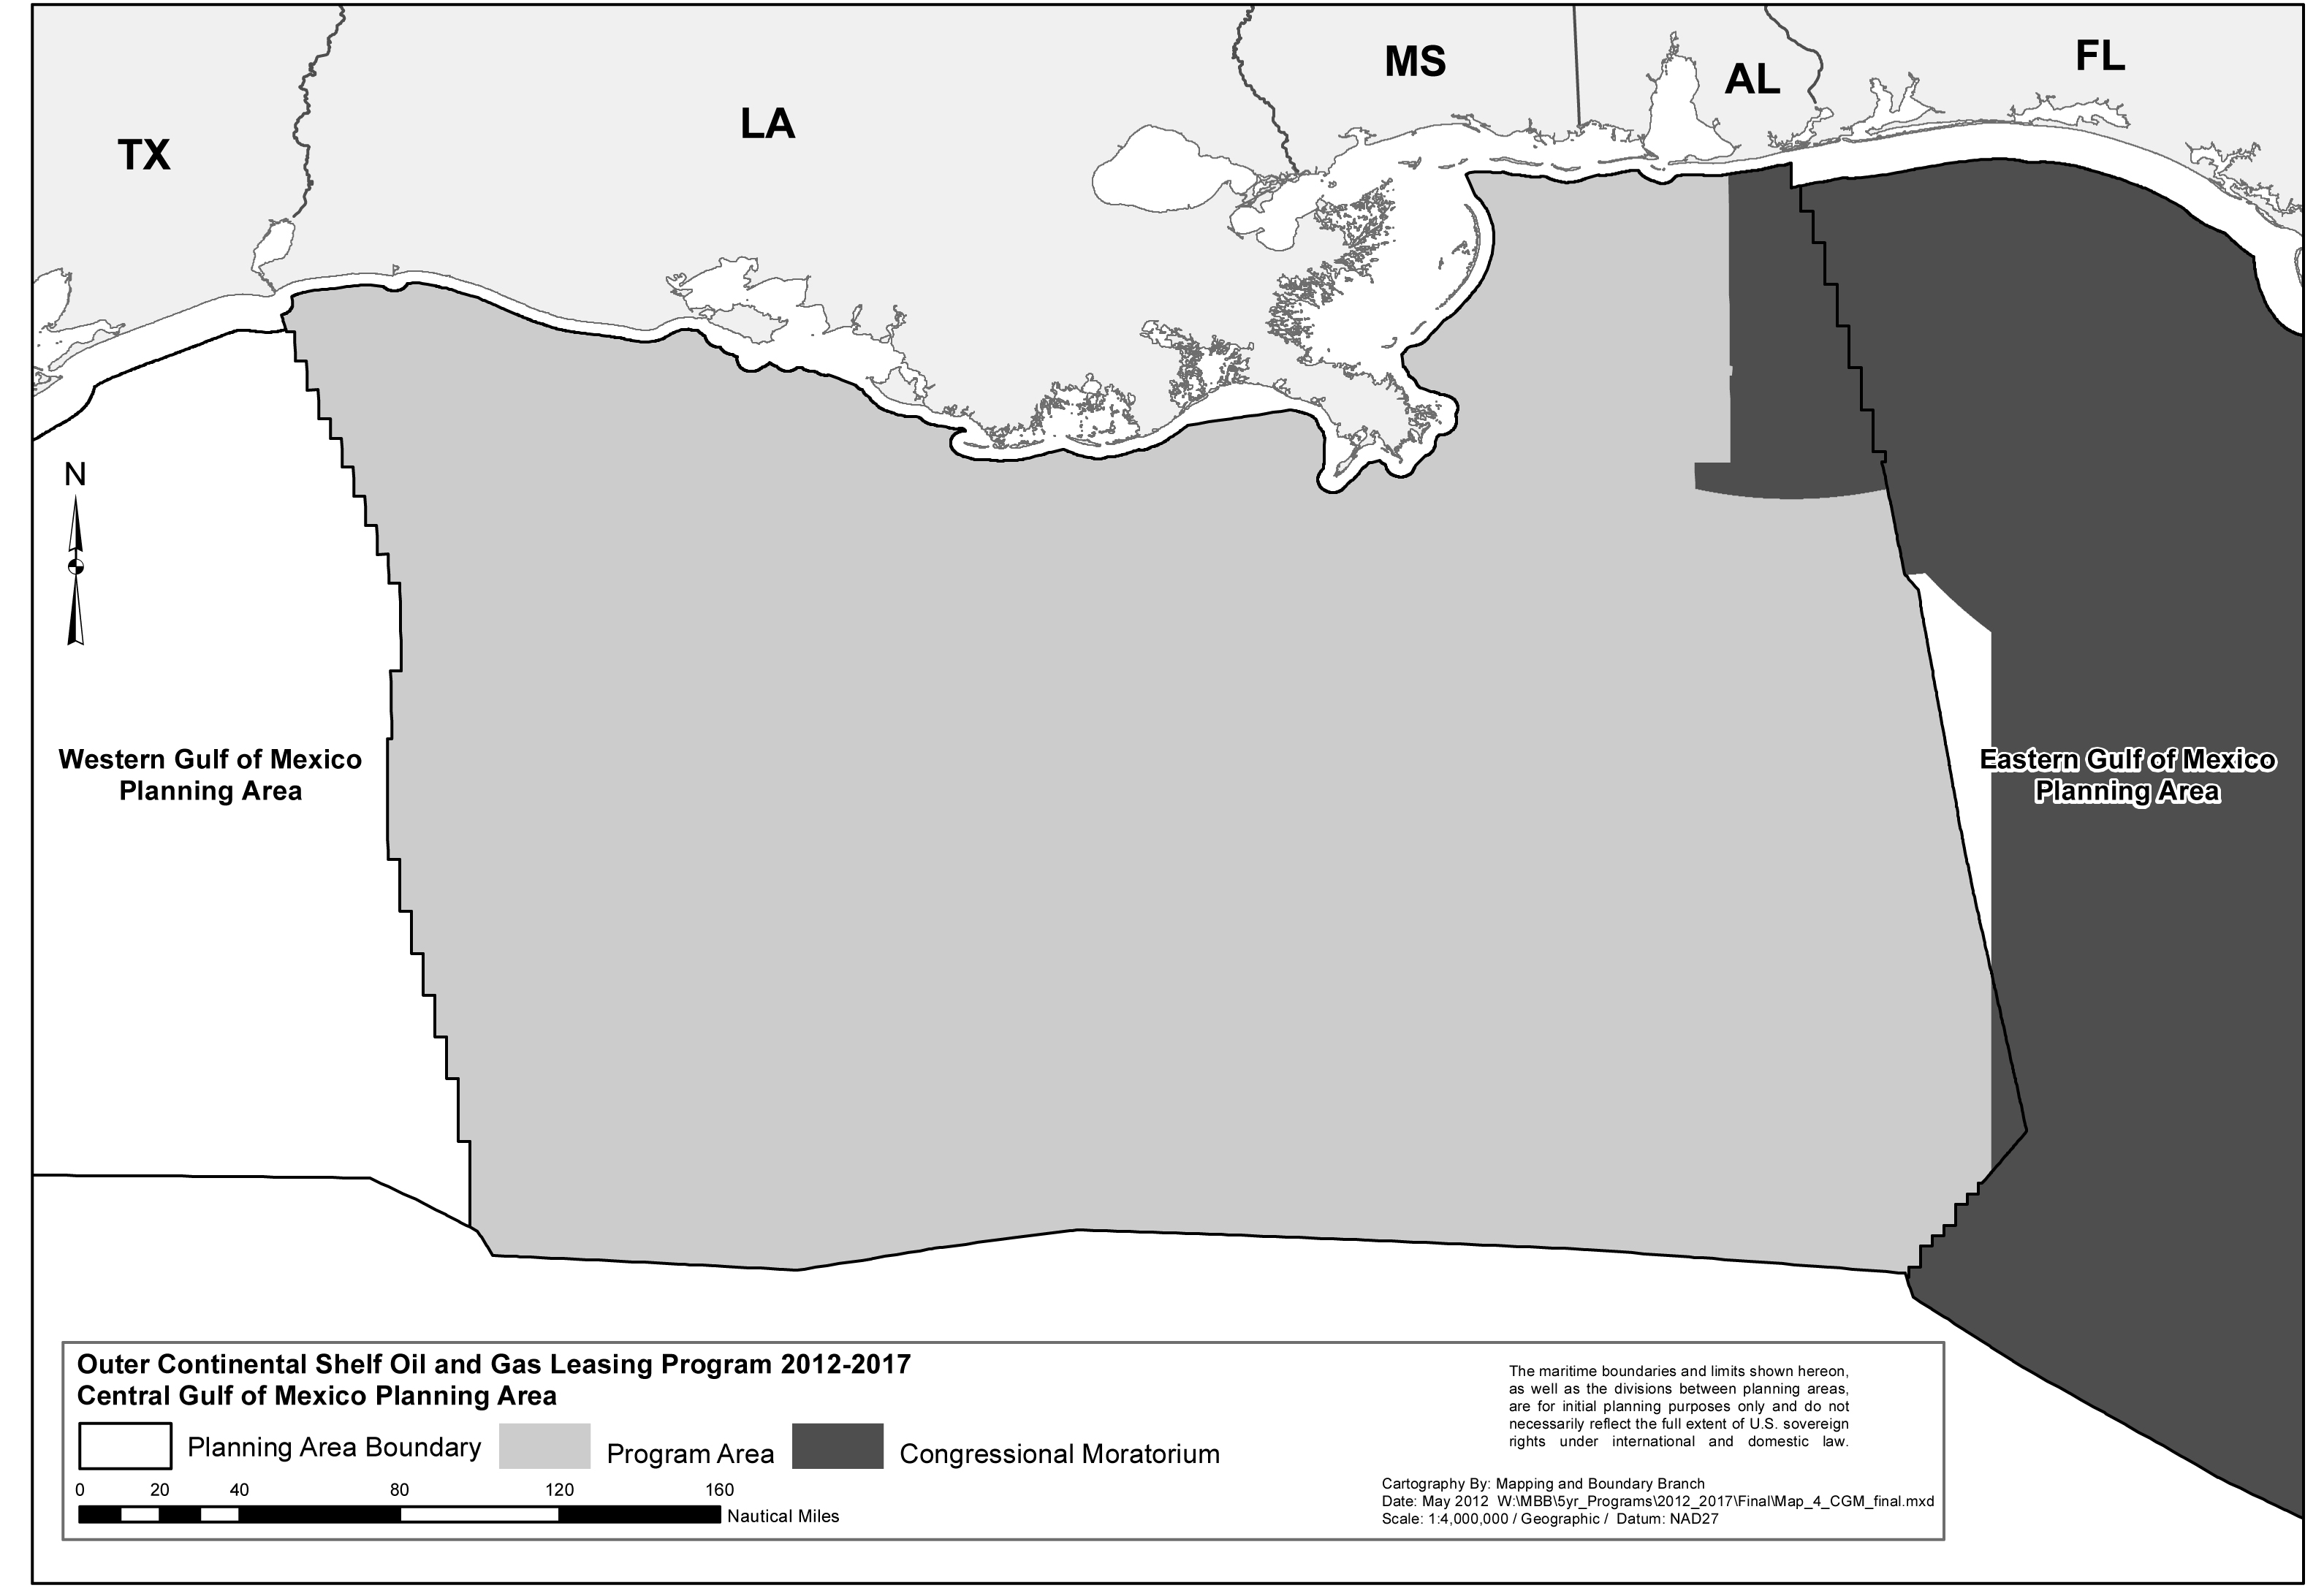 1Central Gulf of Mexico Program Area